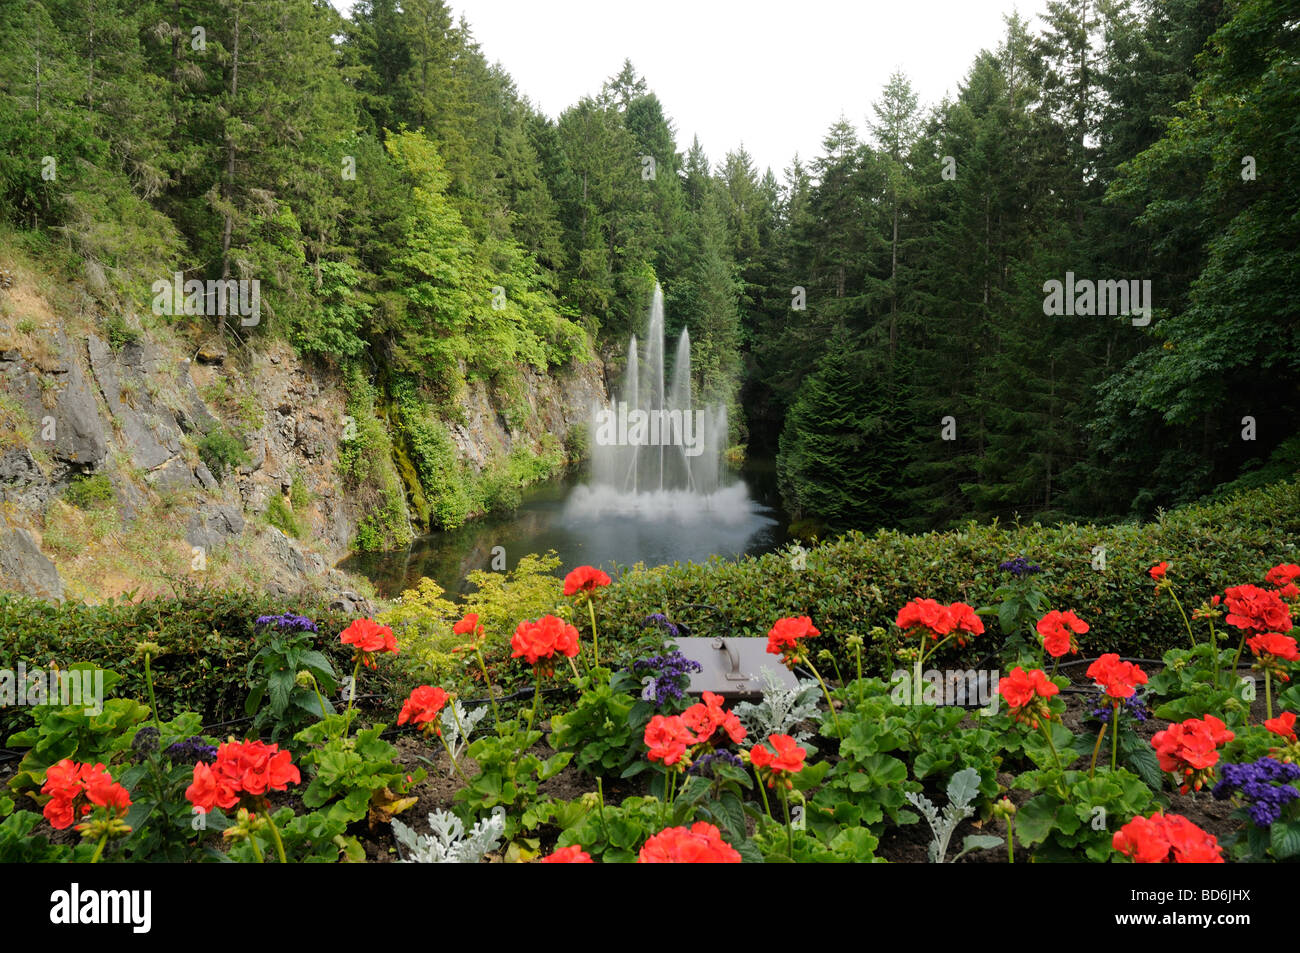 Vancouver airport parking coupon brand coupons - What time does victoria gardens close ...